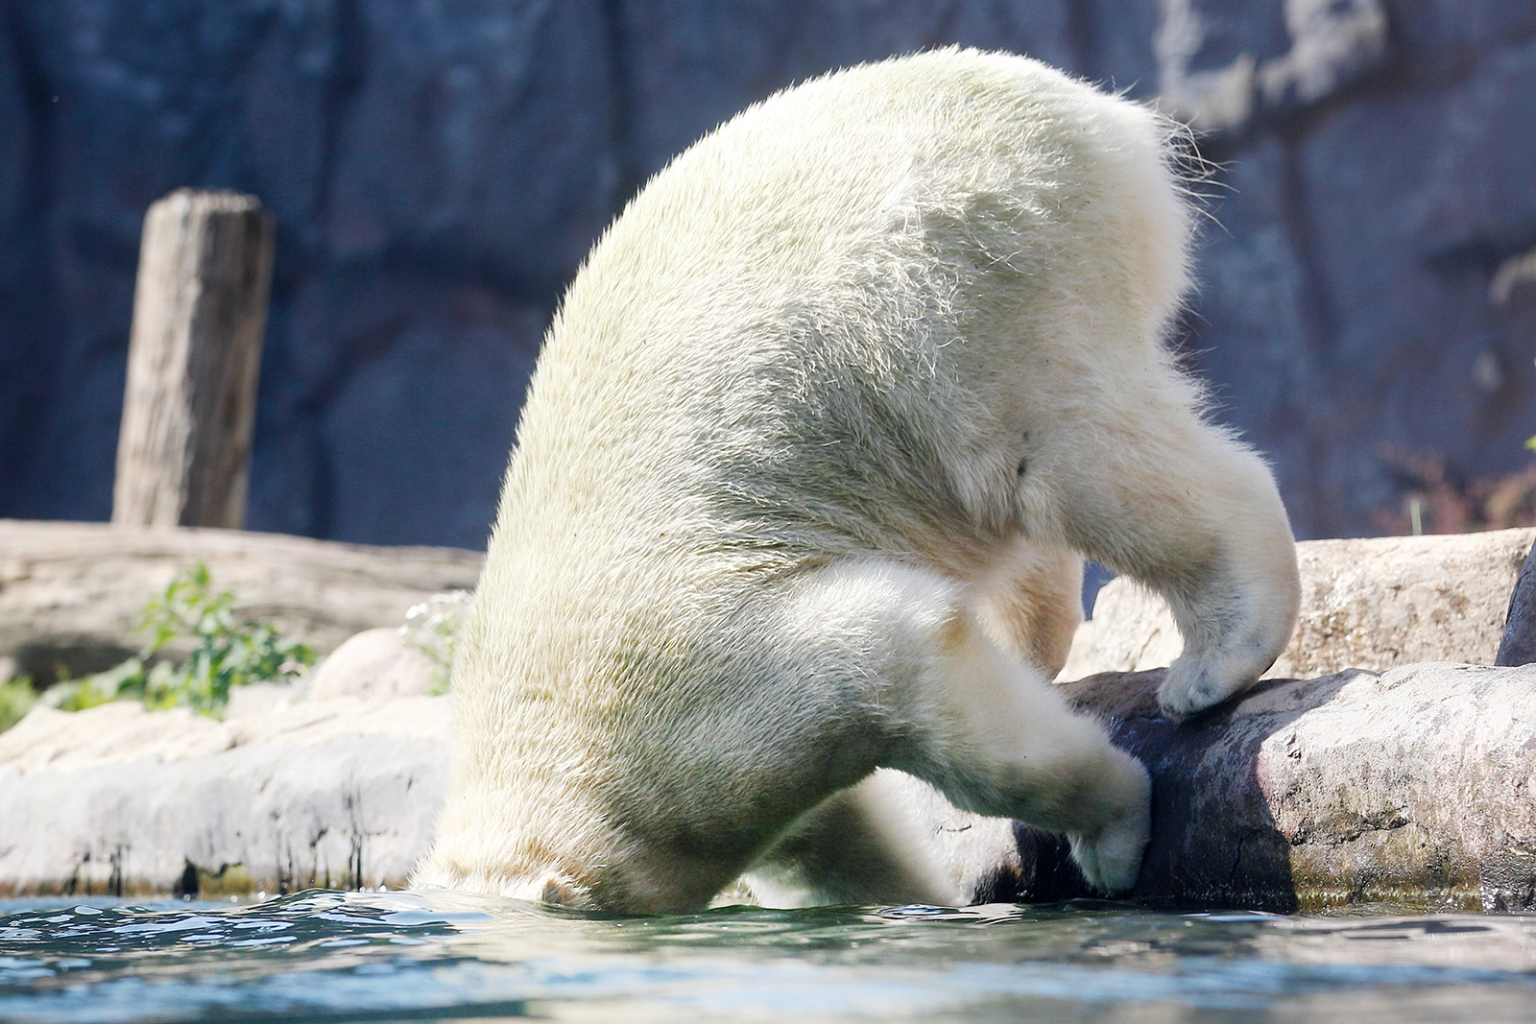 A polar bear jumps in the water at the zoo during a heat weave in Gelsenkirchen, western Germany, on June 25. ROLAND WEIHRAUCH/AFP/Getty Images